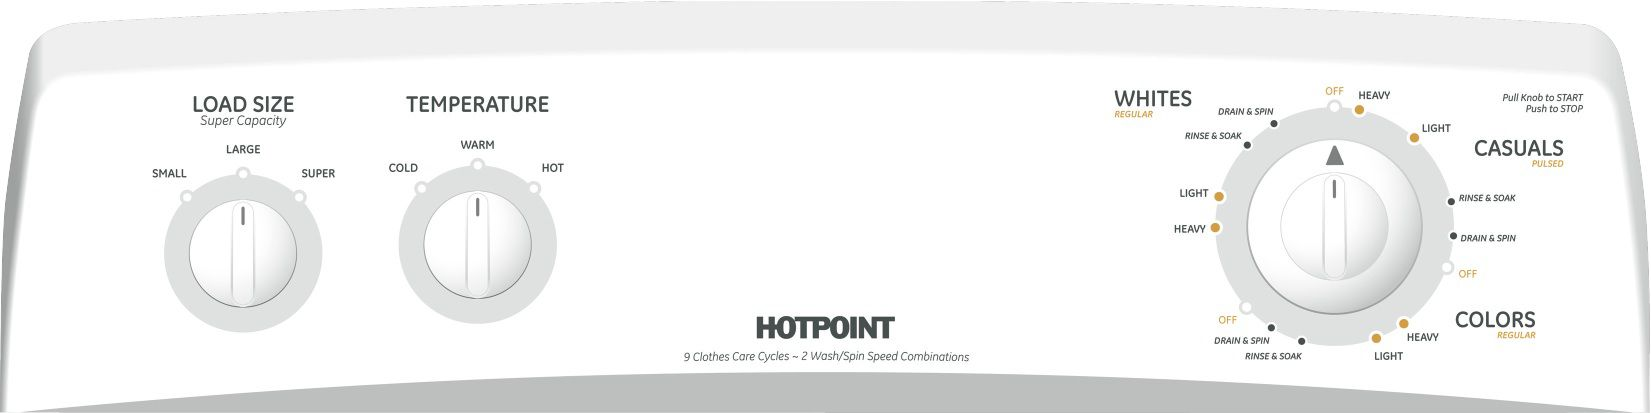 Hotpoint 3.5 cu. ft. Top Load Washer - White